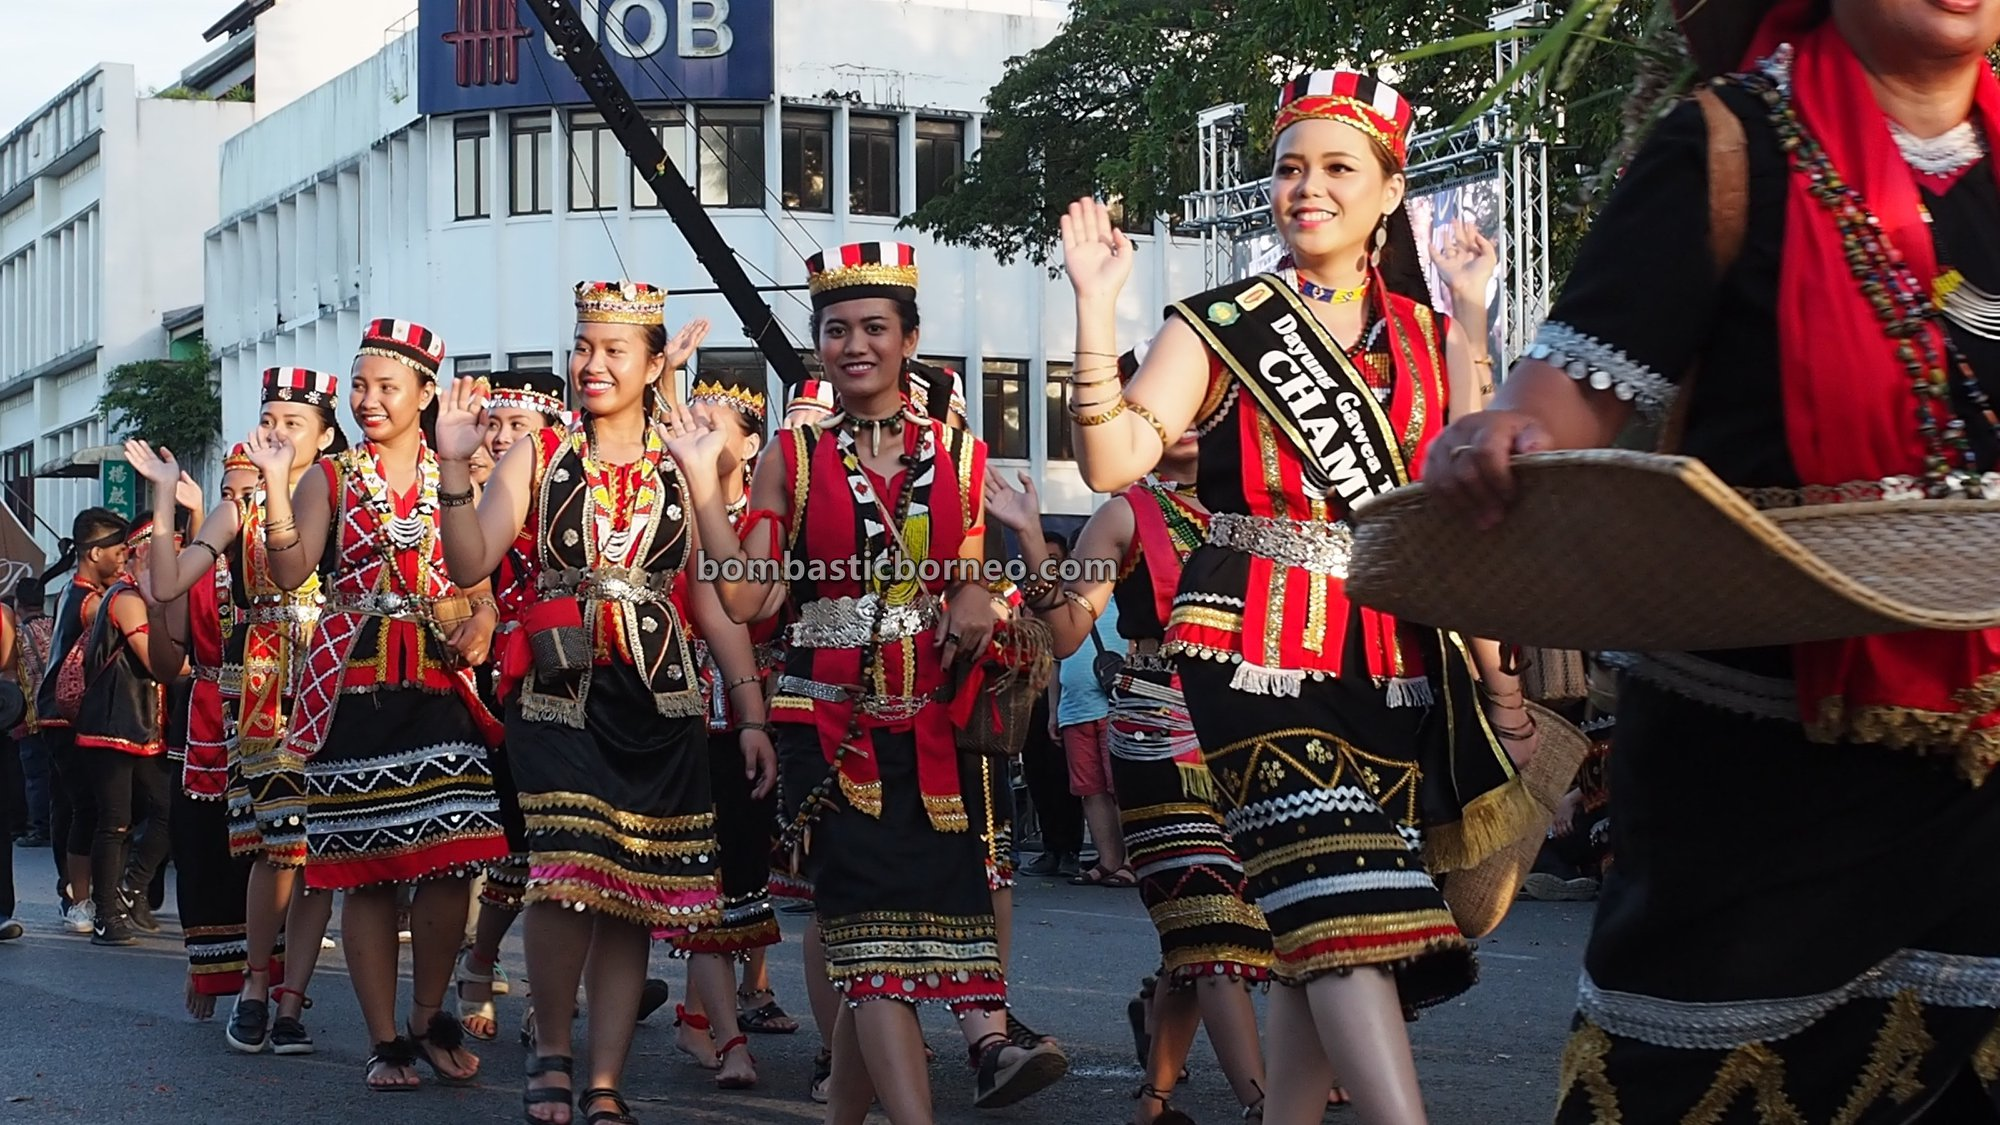 Street Parade, traditional, bidayuh, backpackers, Malaysia, Ethnic, native, tribe, tourism, tourist attraction, Travel guide, Cross Border, 探索婆罗洲游踪, 砂拉越达雅比达友族, 马来西亚古晋